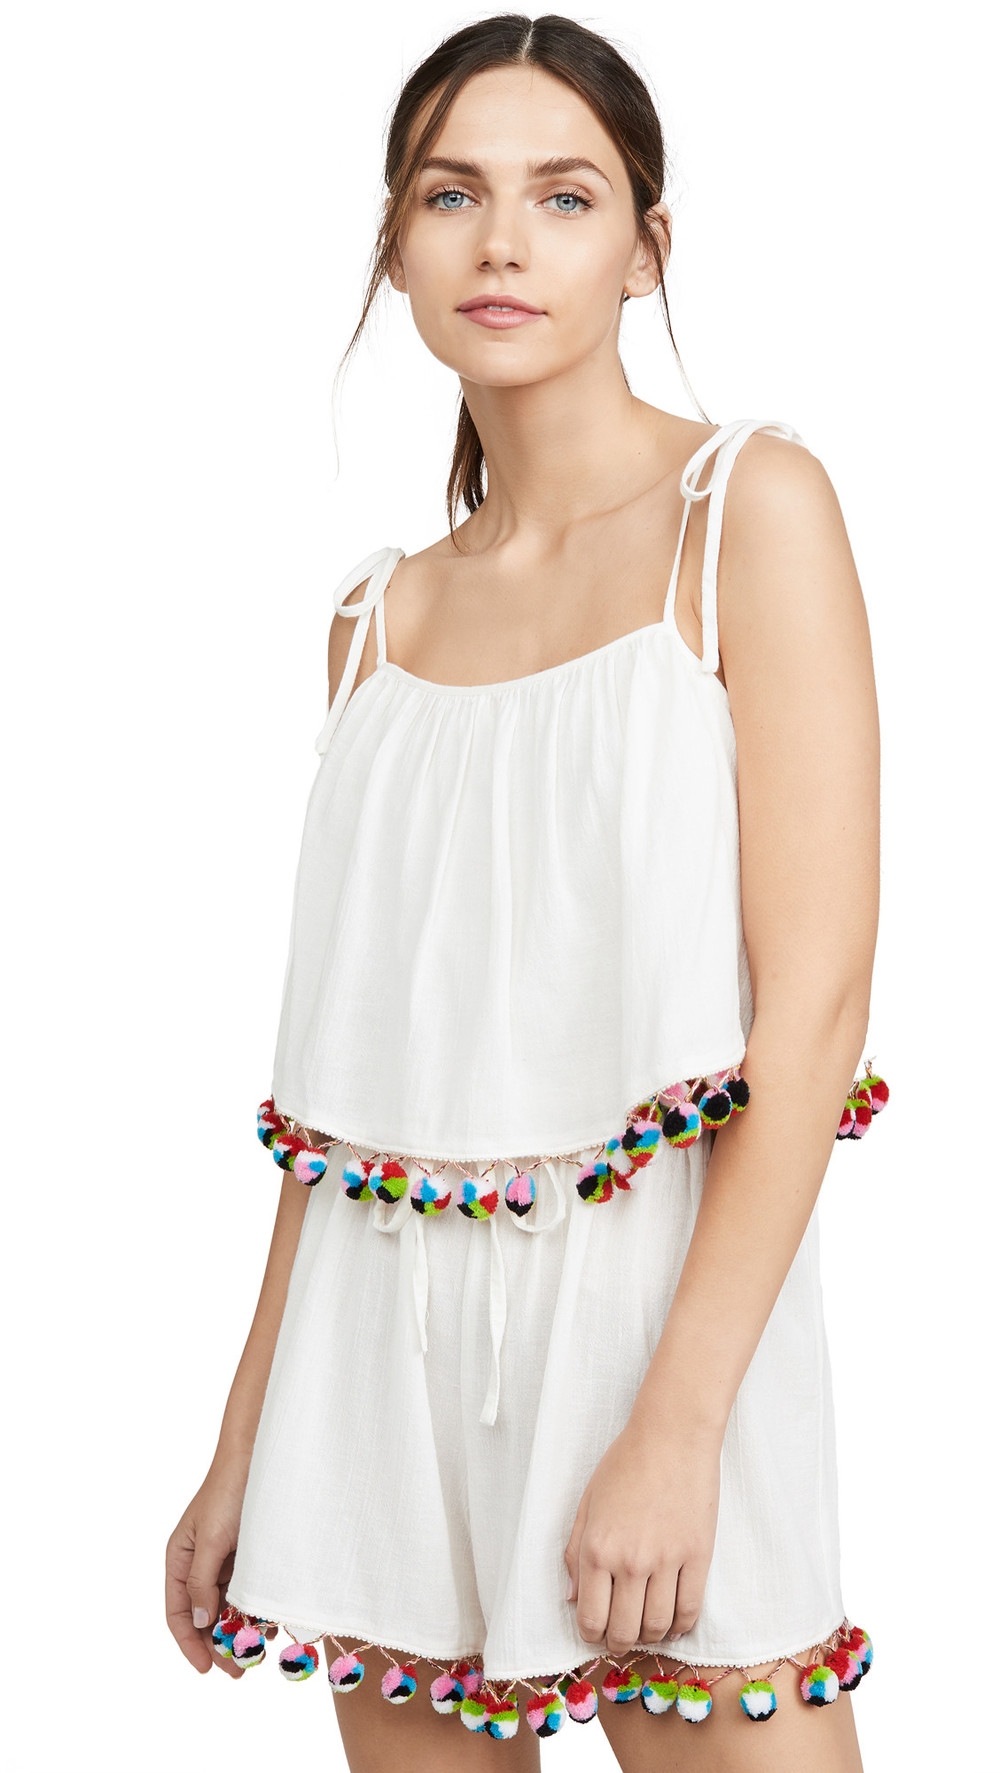 Madewell Tiered Tie Strap Romper in ivory